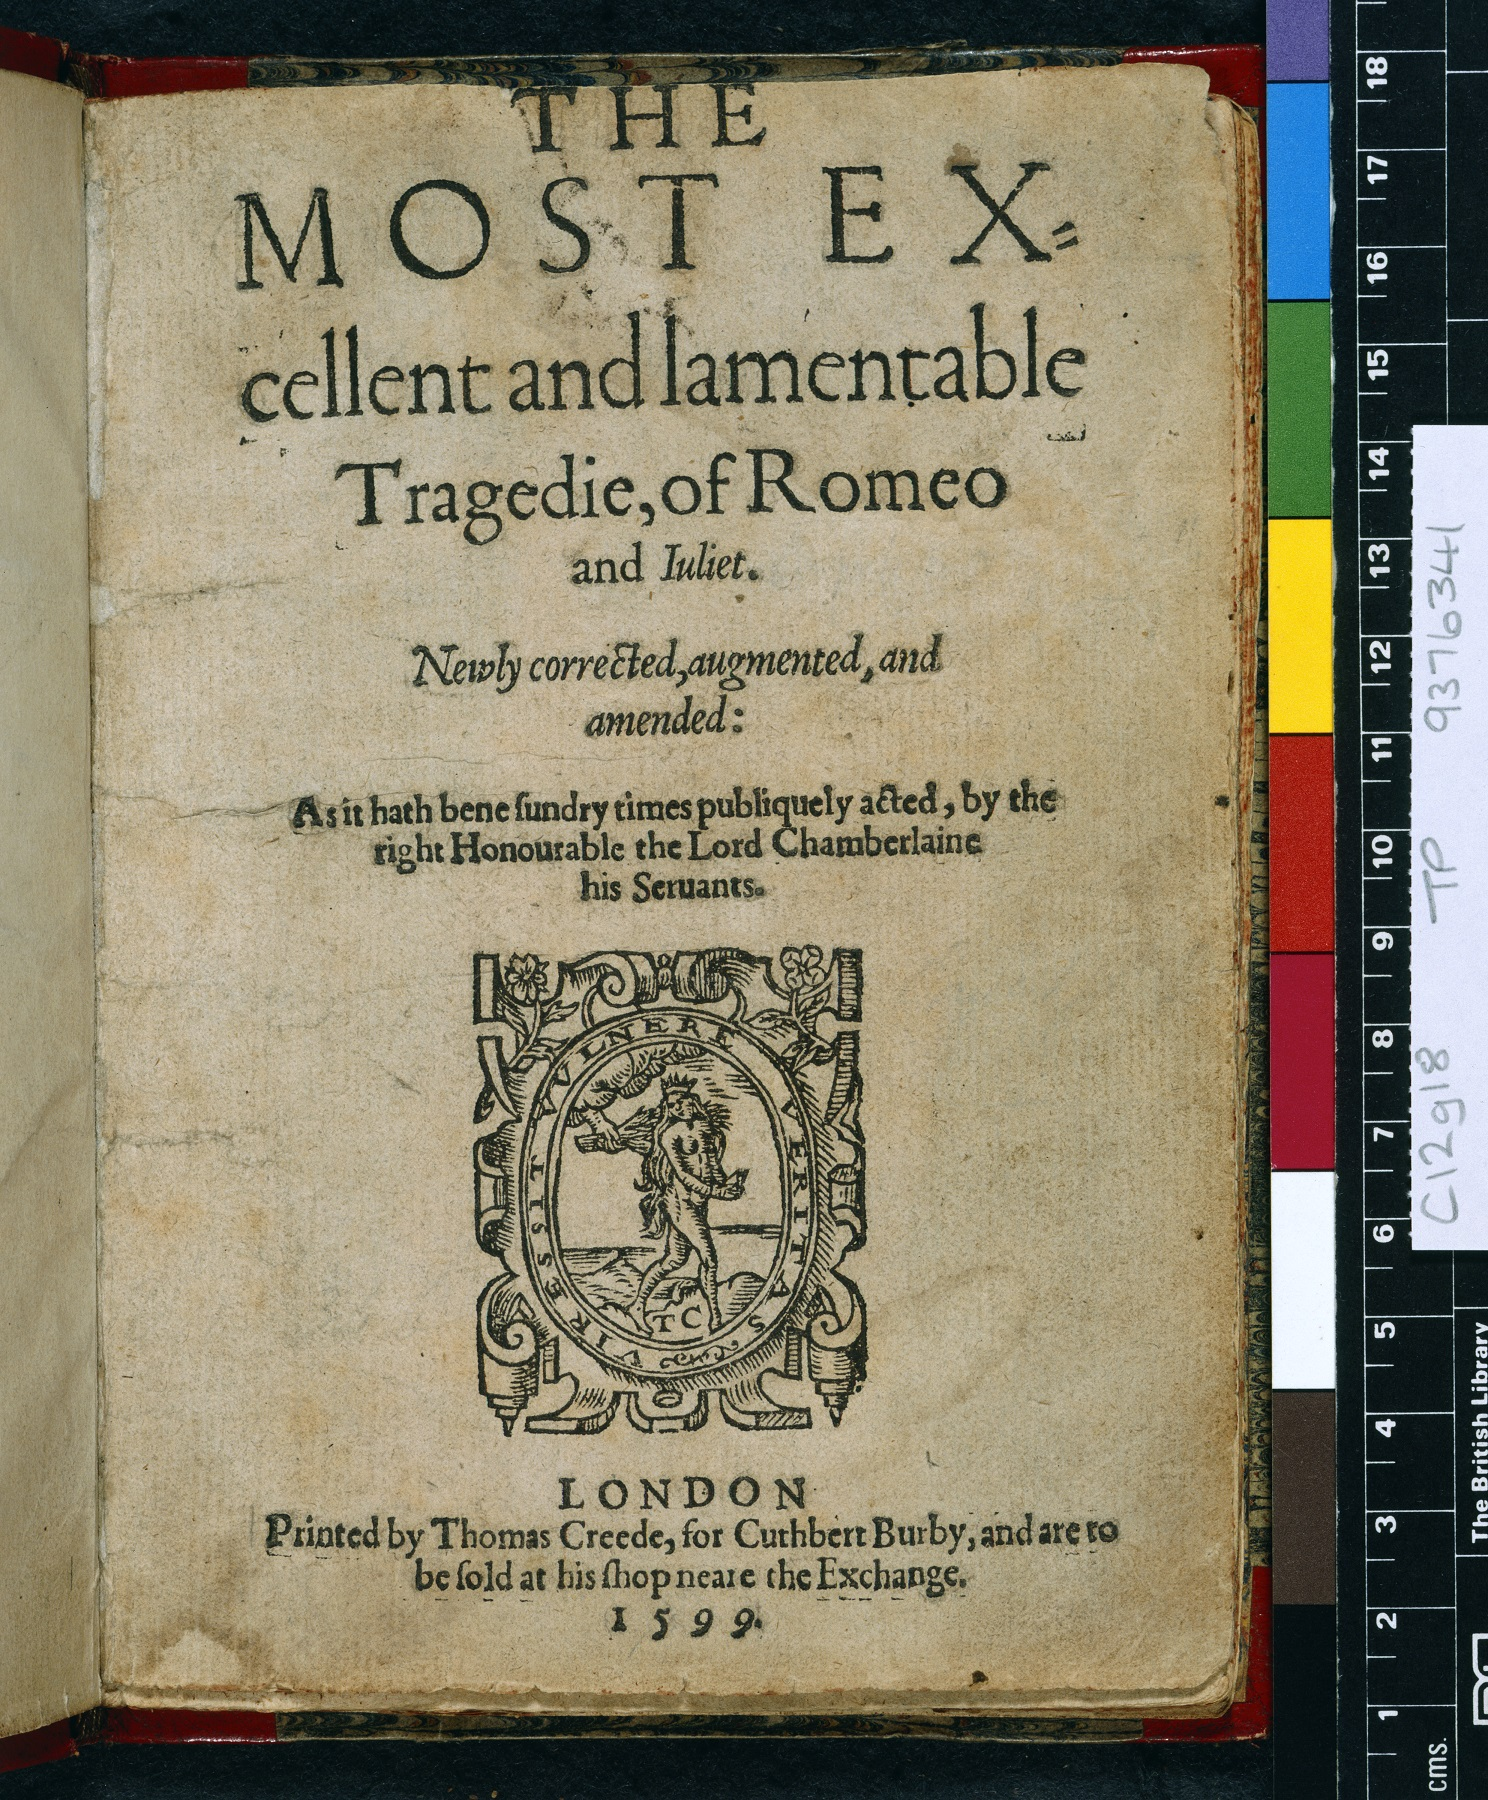 Romeo and Juliet by William Shakespeare. 1599 Quarto edition. British Library C.12.g.18